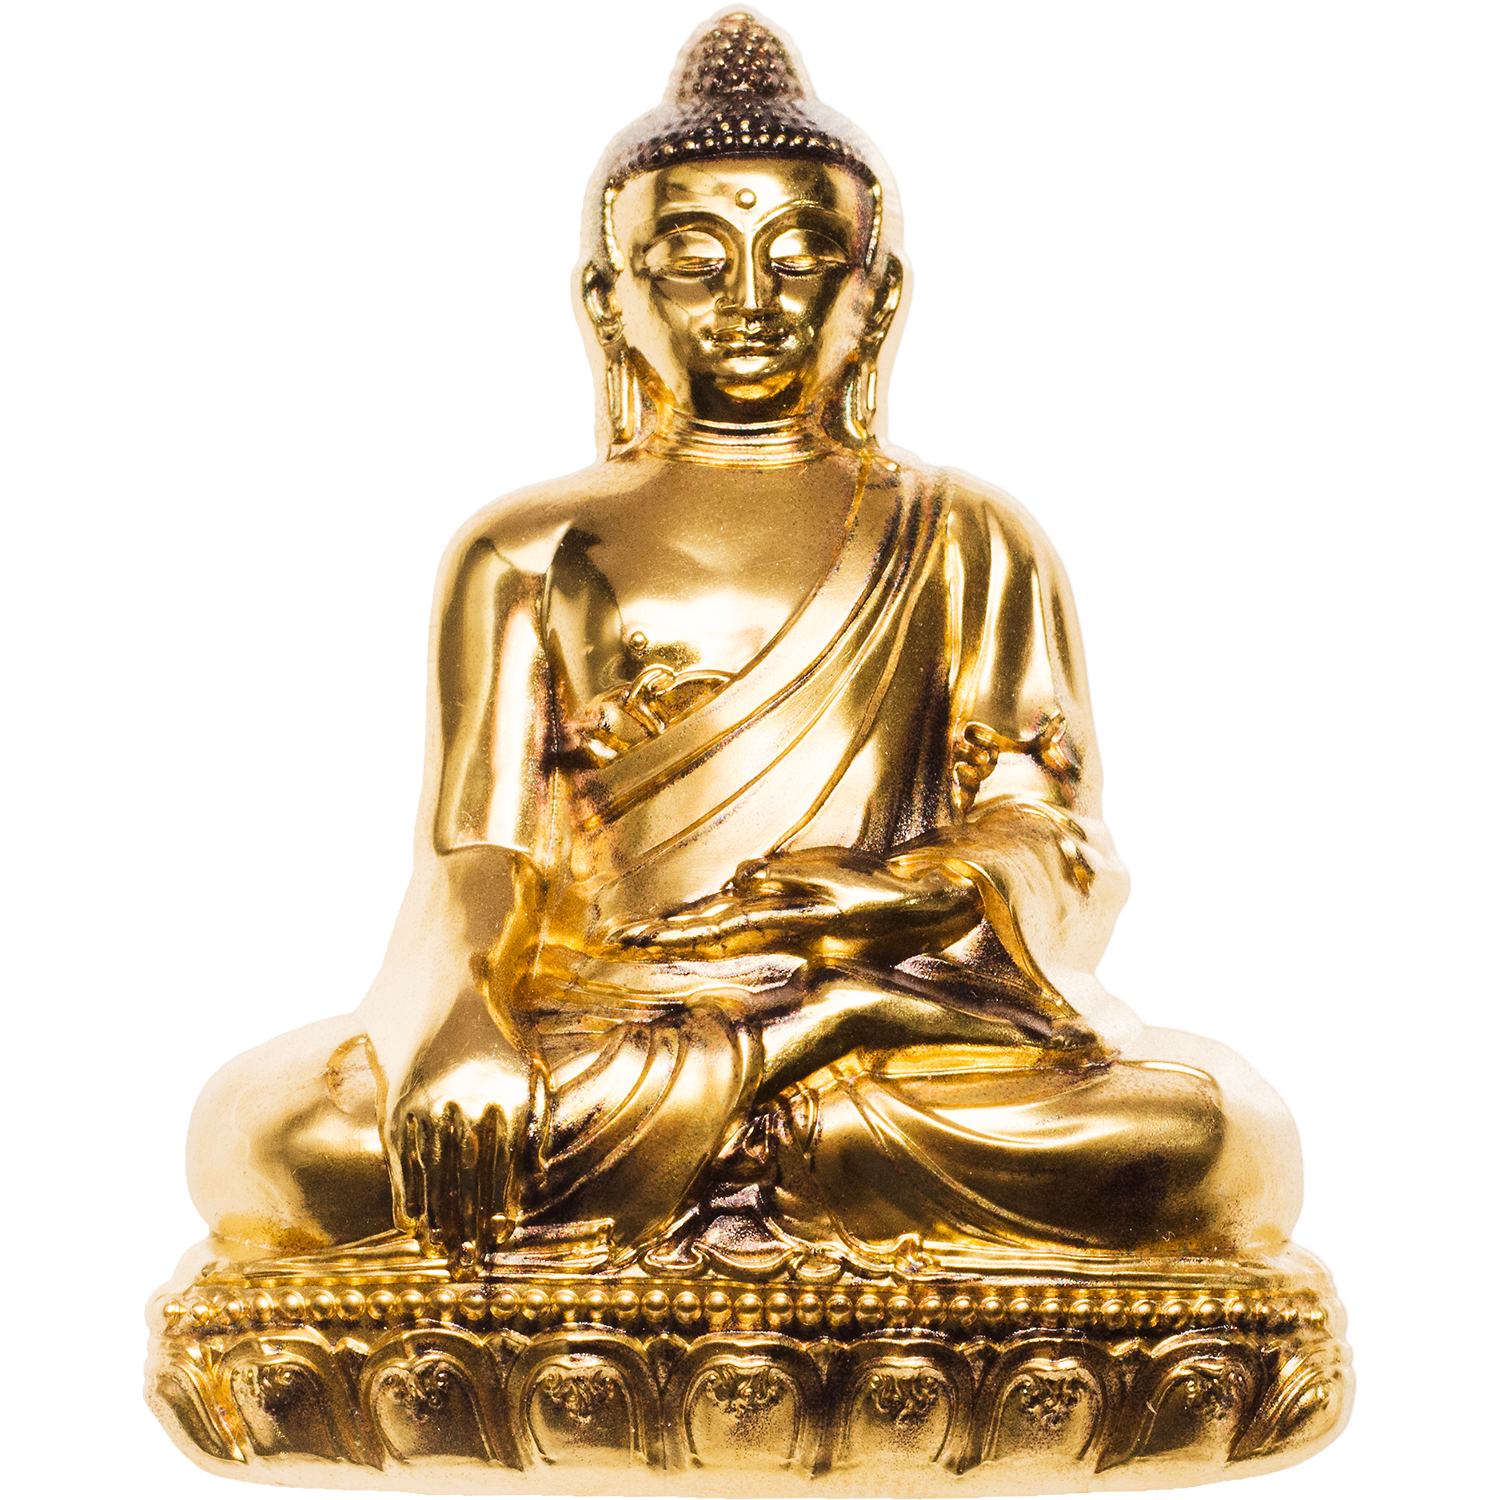 Shakyamuni Buddha shape silver coin gold plated by CIT Coin Invest Ag and B H Mayer mint with smartminting ultra high relief for Mongolia